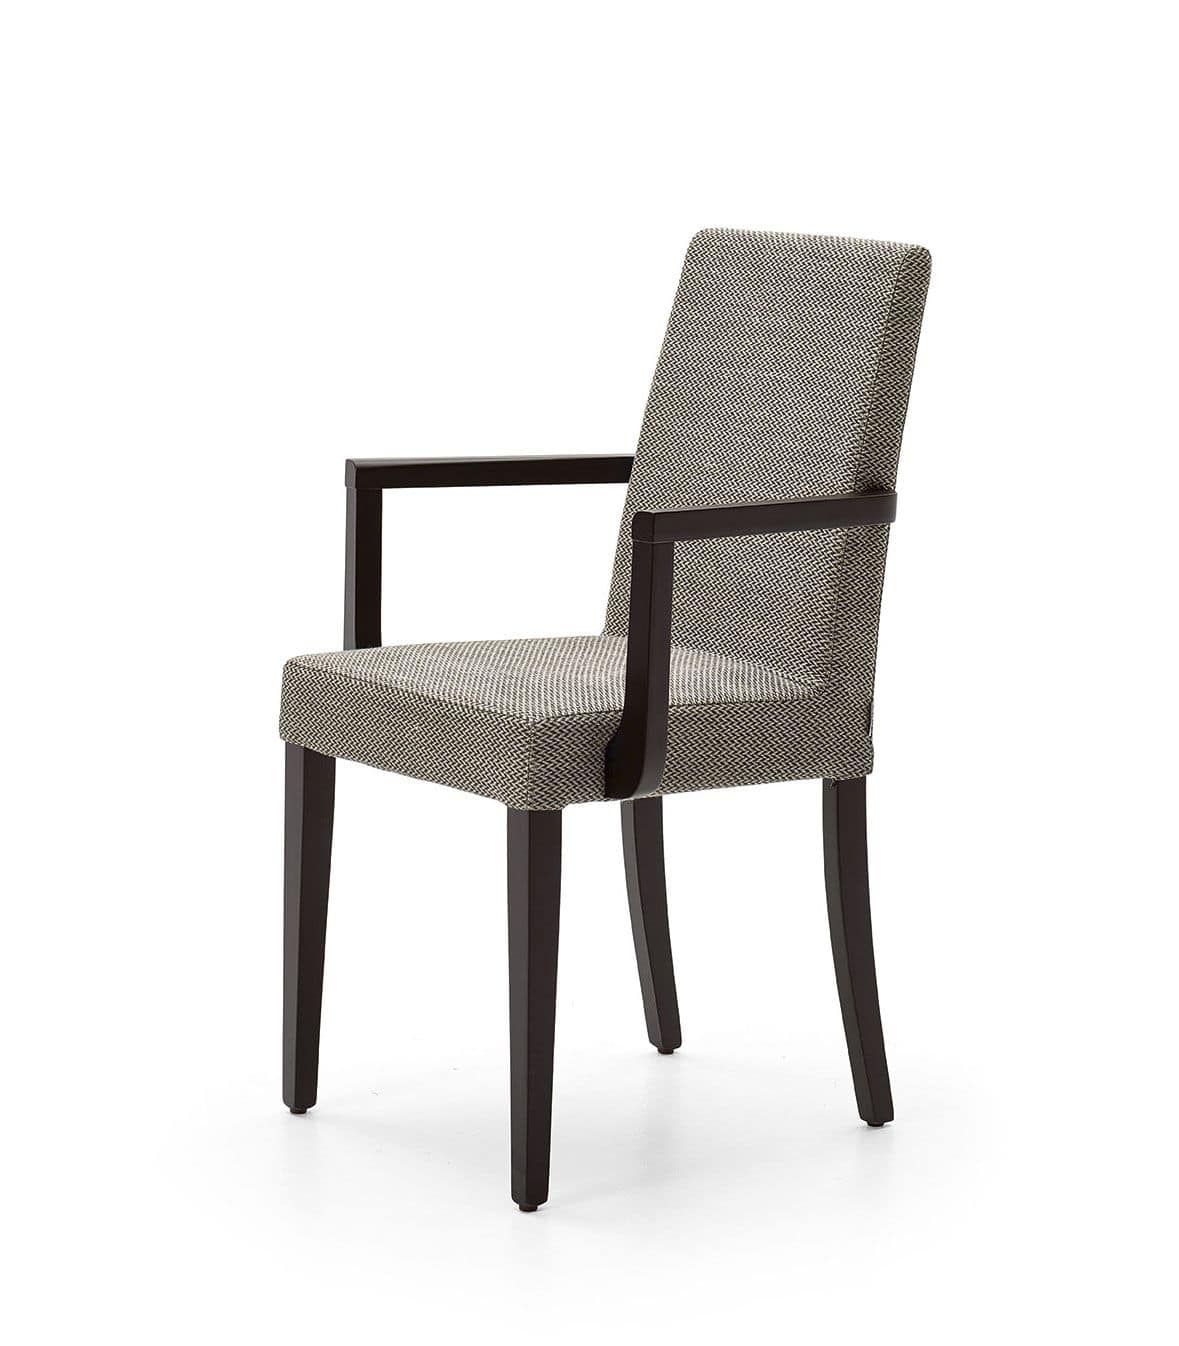 Wing back armchair occasional accent chair velvet or fabric lounge cocktail chair with stud detail arm rests luxurious padded armchairs for sumptuous living (smoky rose velvet) 4.2 out of 5 stars 76 £169.99 £ 169. Upholstered chair with armrests, for dining room   IDFdesign